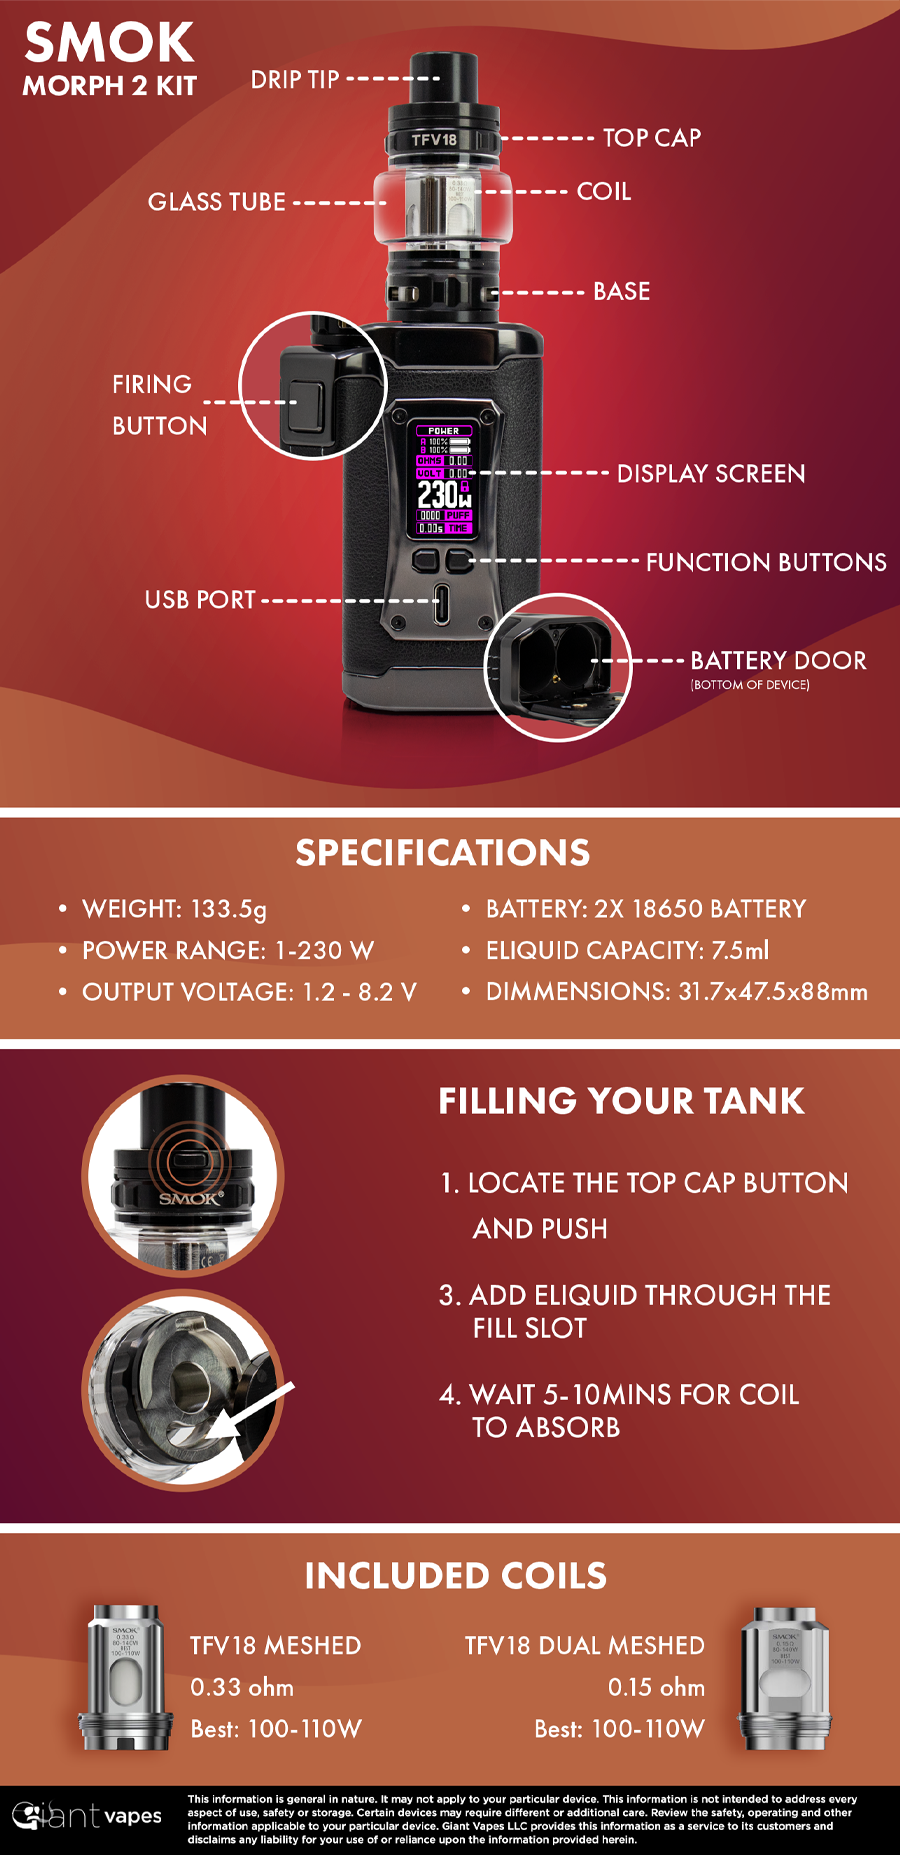 SMOK Morph 2 Kit Infographic